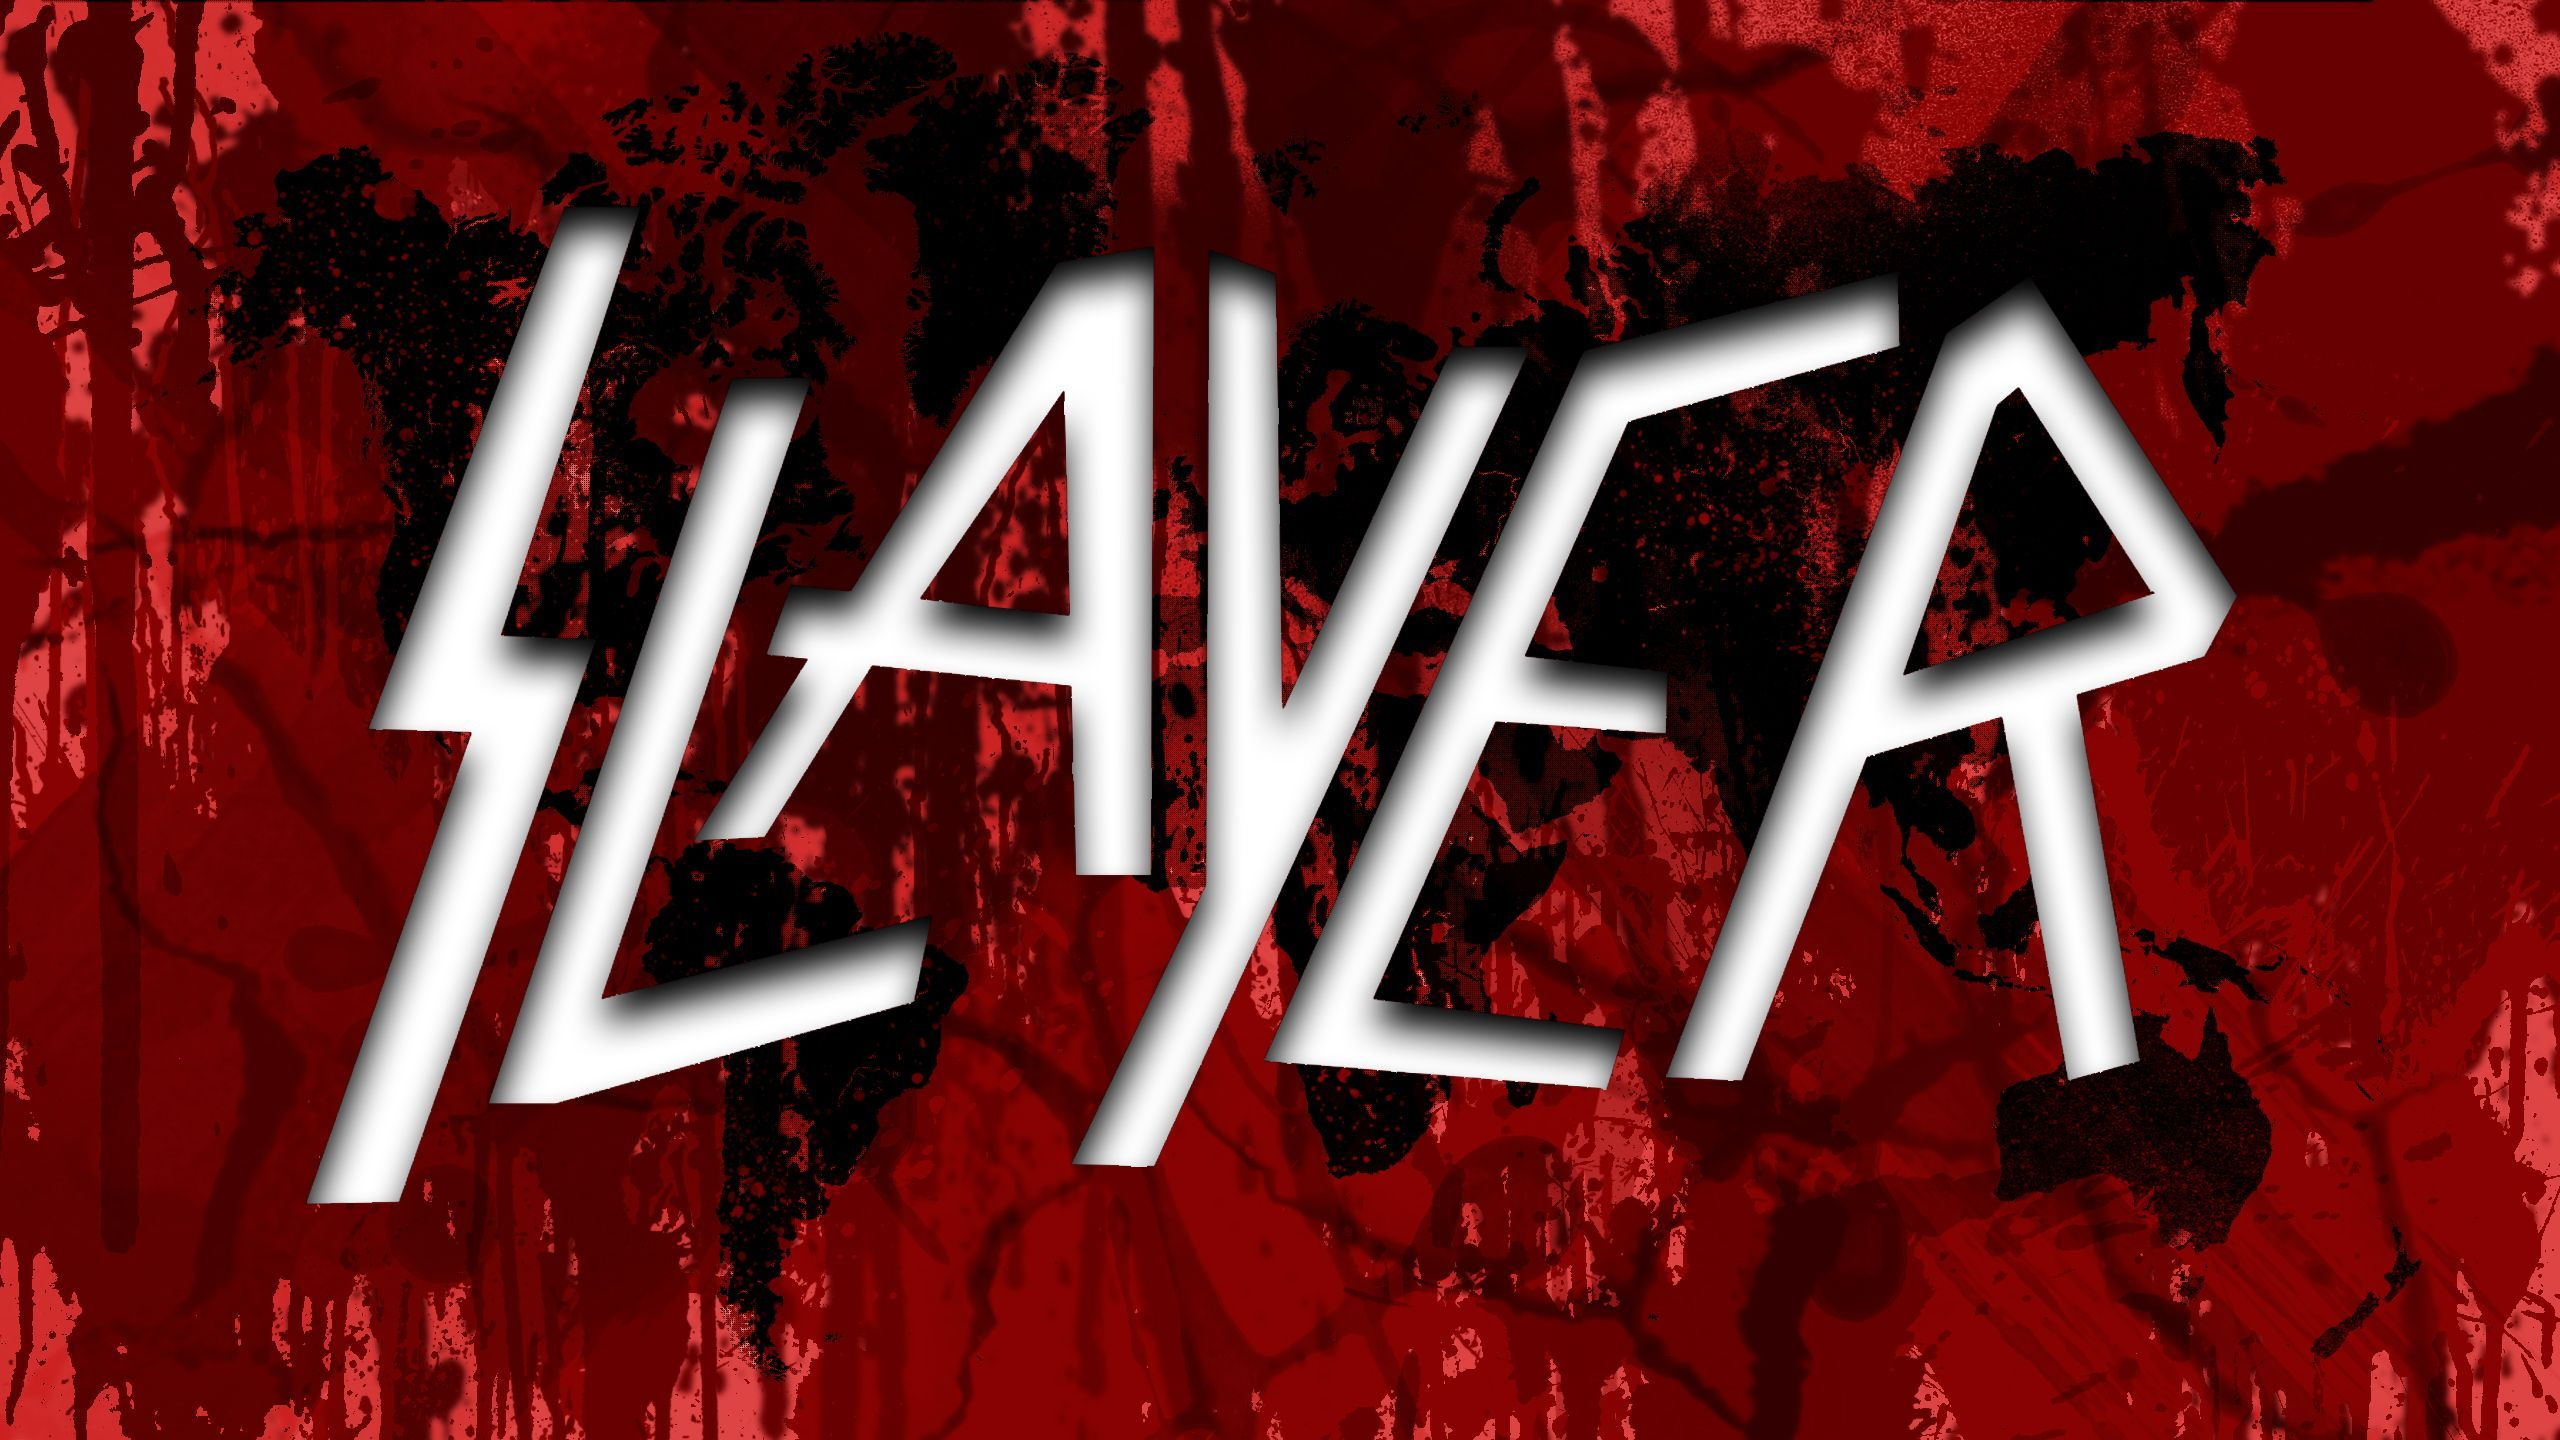 Full Hd 3d Wallpapers 1920x1080 Free Download For Mobile Free Download Slayer Band Wallpapers Pixelstalk Net